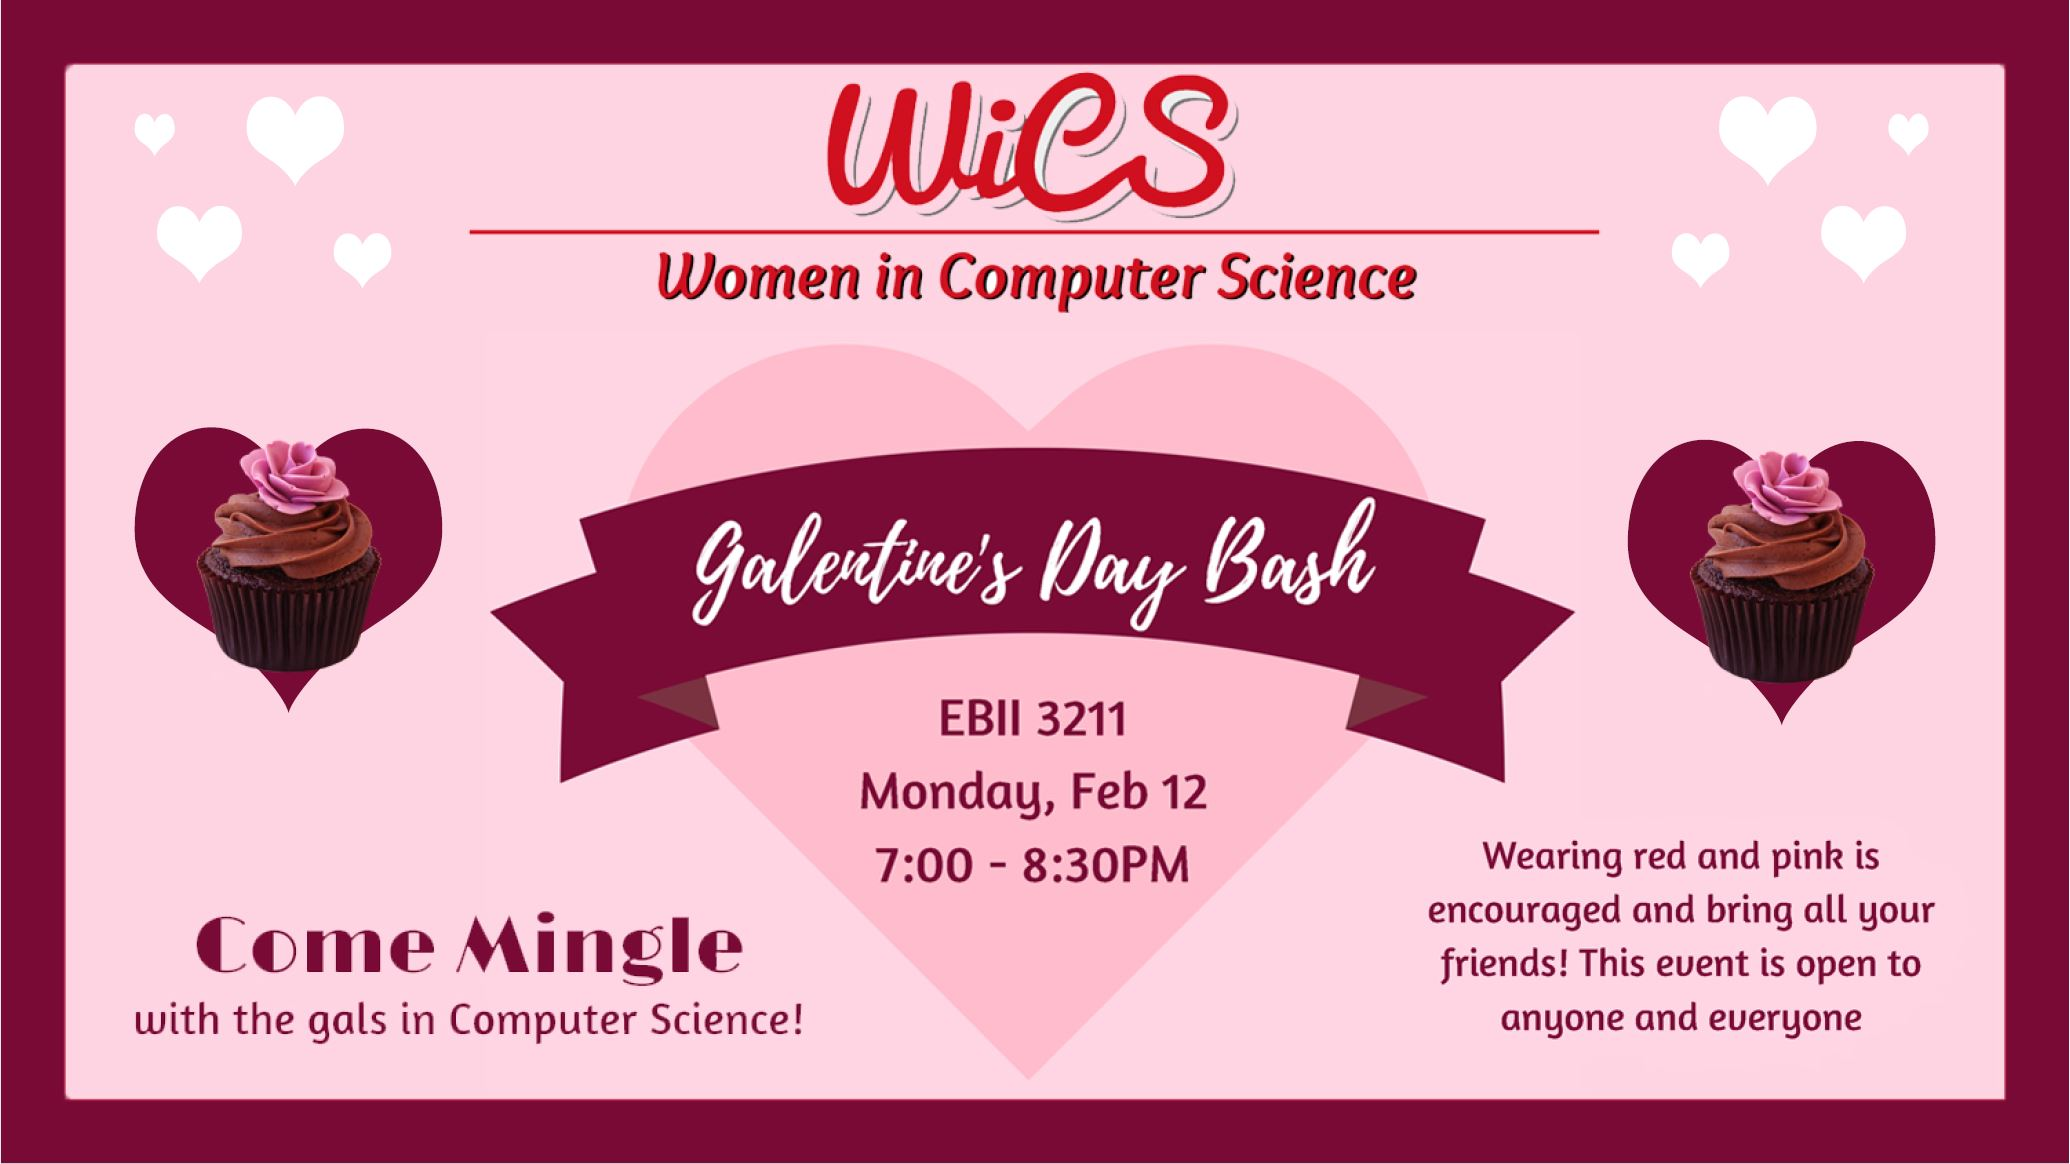 Come mingle with the gals in Computer Science! Wearing red and pink is encouraged and bring all your friends! This event is open to anyone and everyone :)